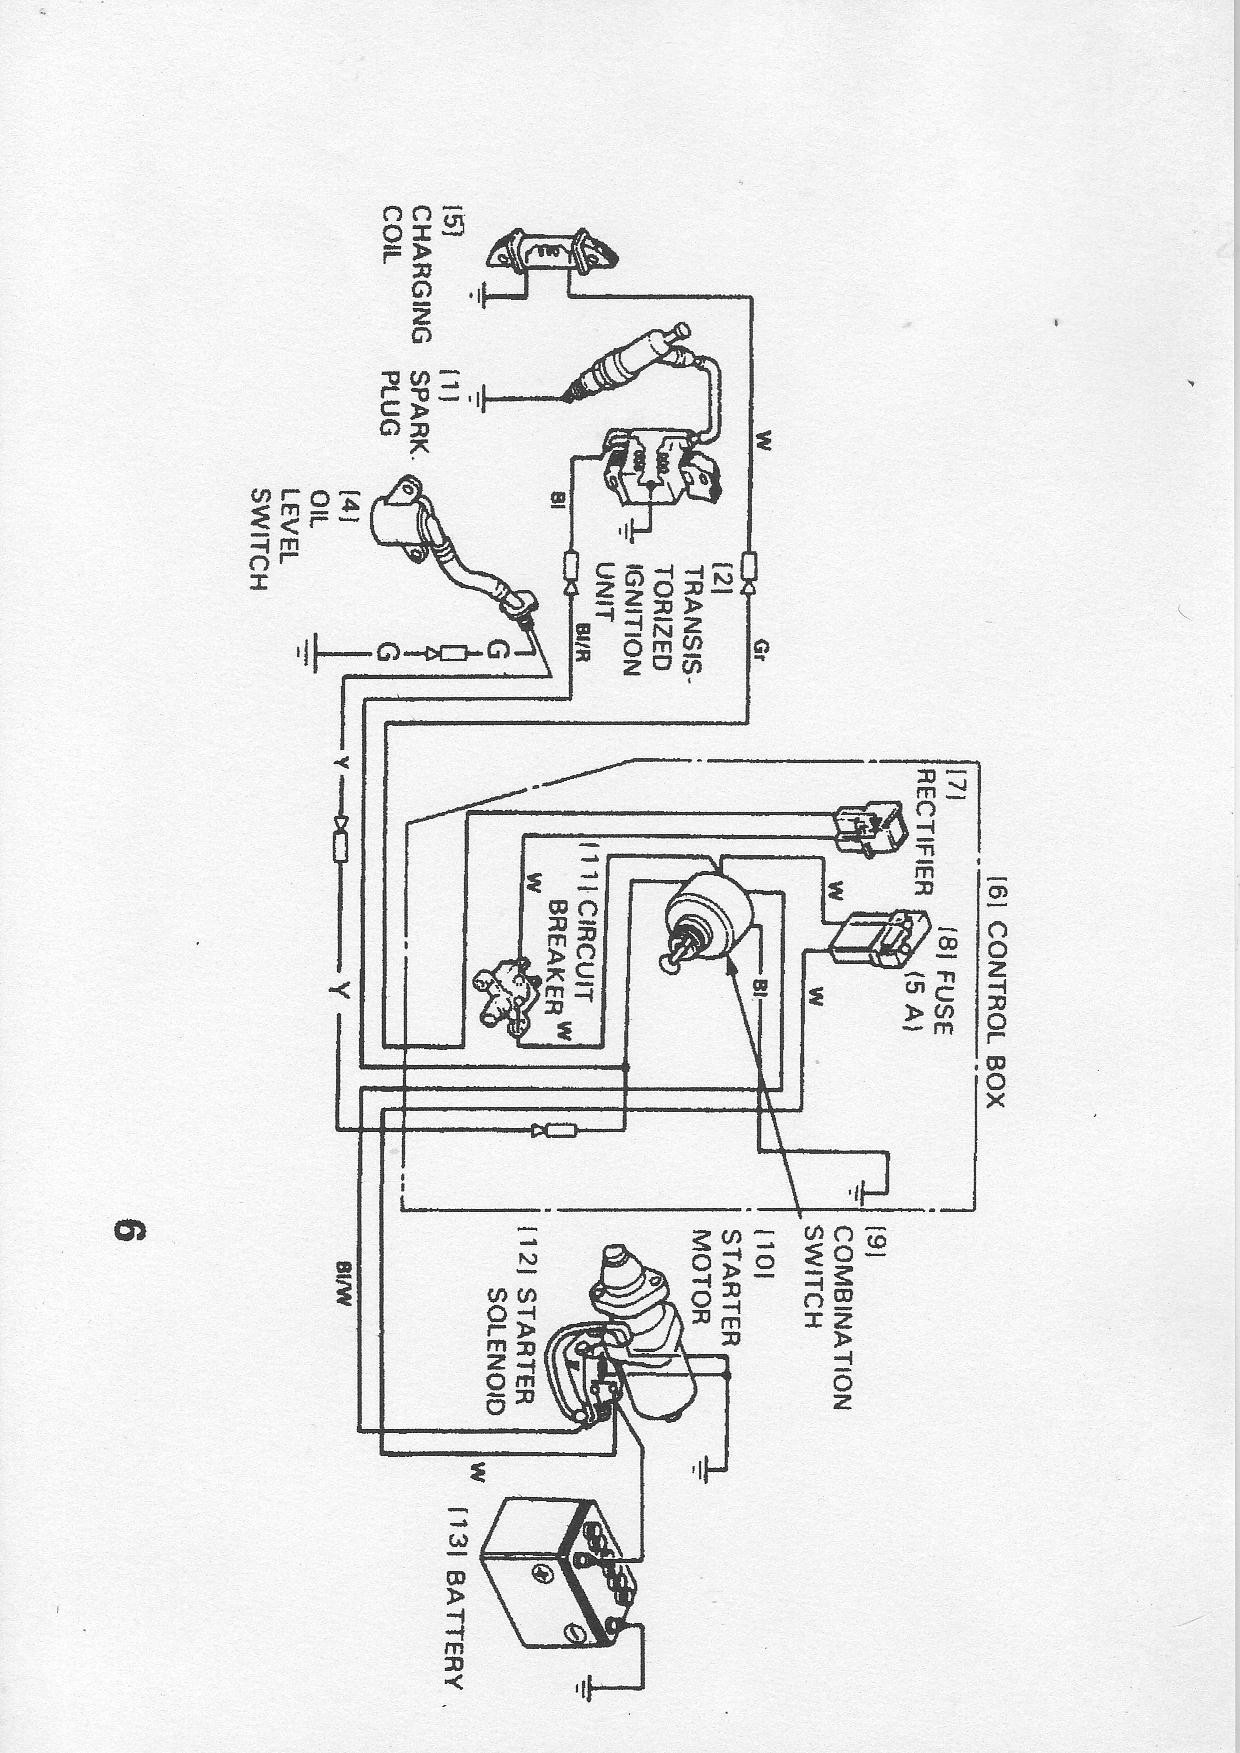 Honda Gx390 Parts Diagram Unique Predator 420cc Wiring